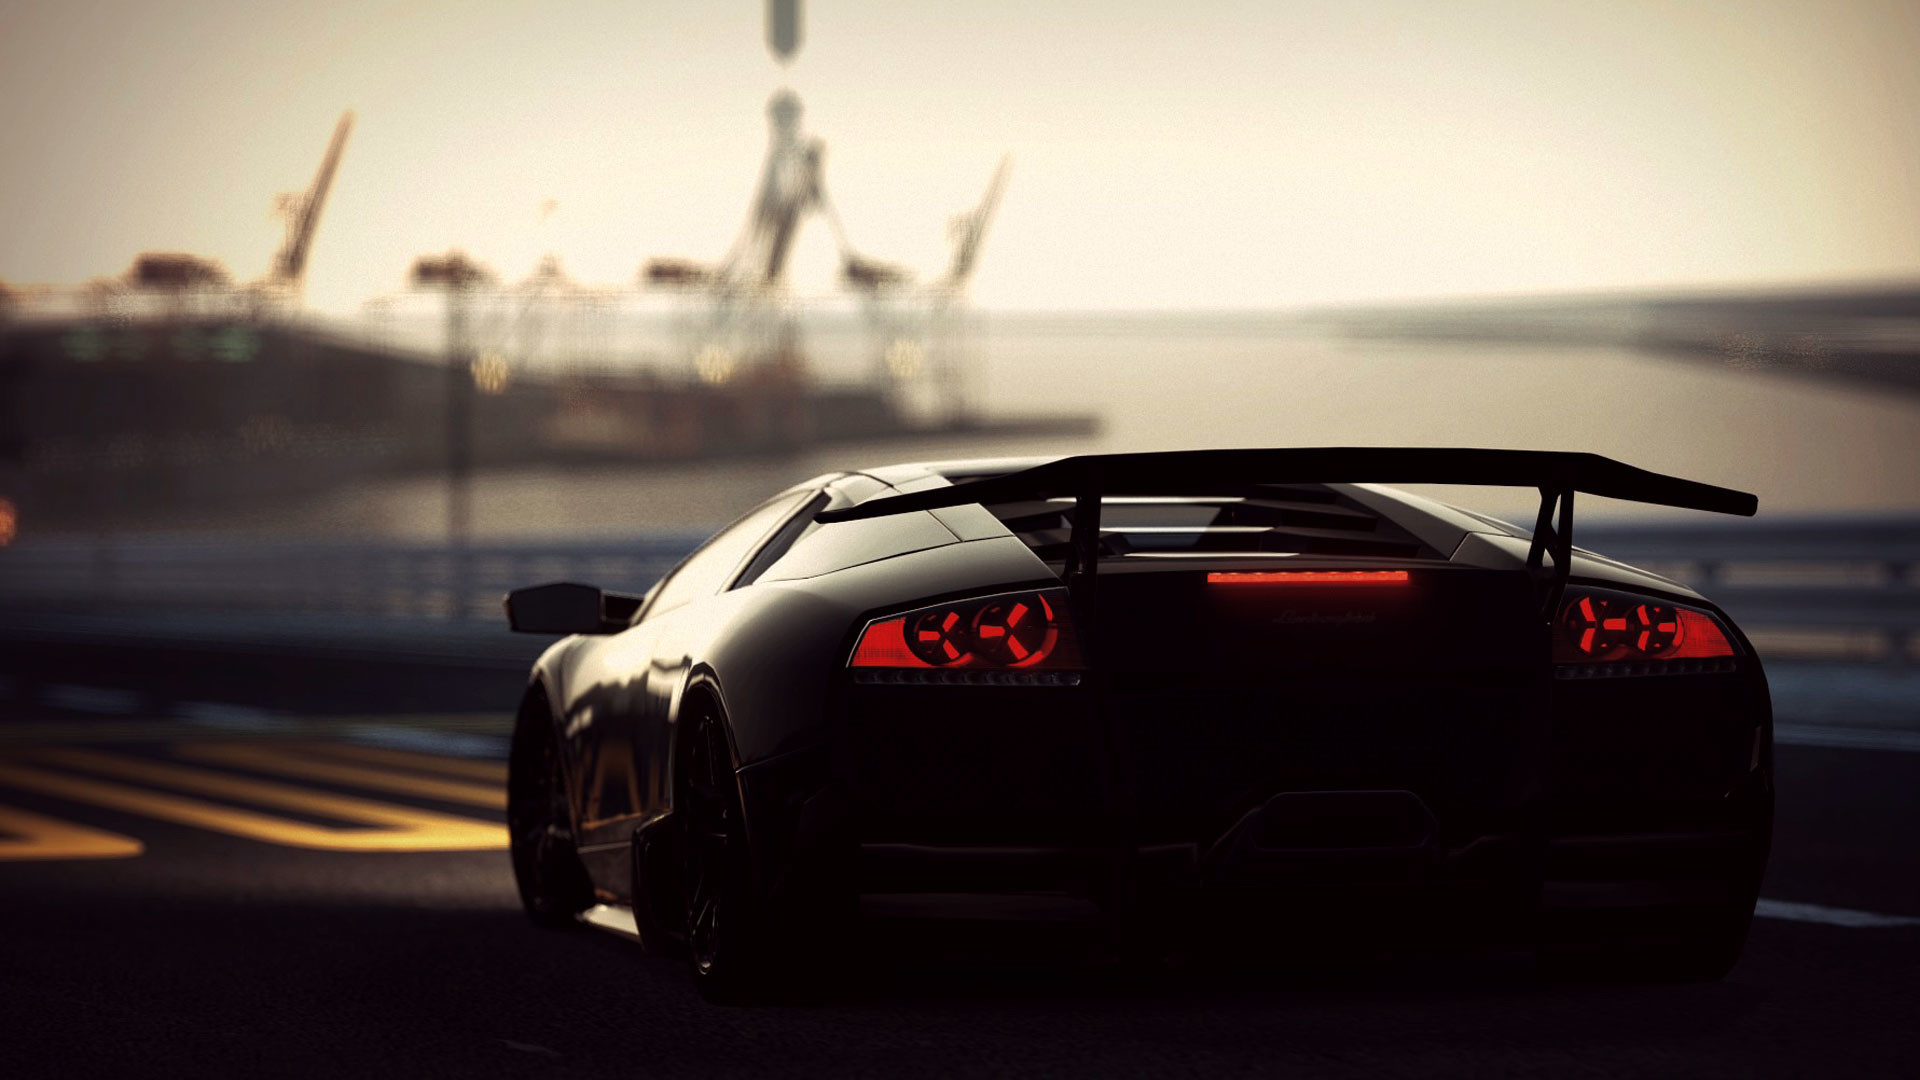 Res: 1920x1080, Fresh Lamborghini Wallpaper Lovely Image Background Picture.